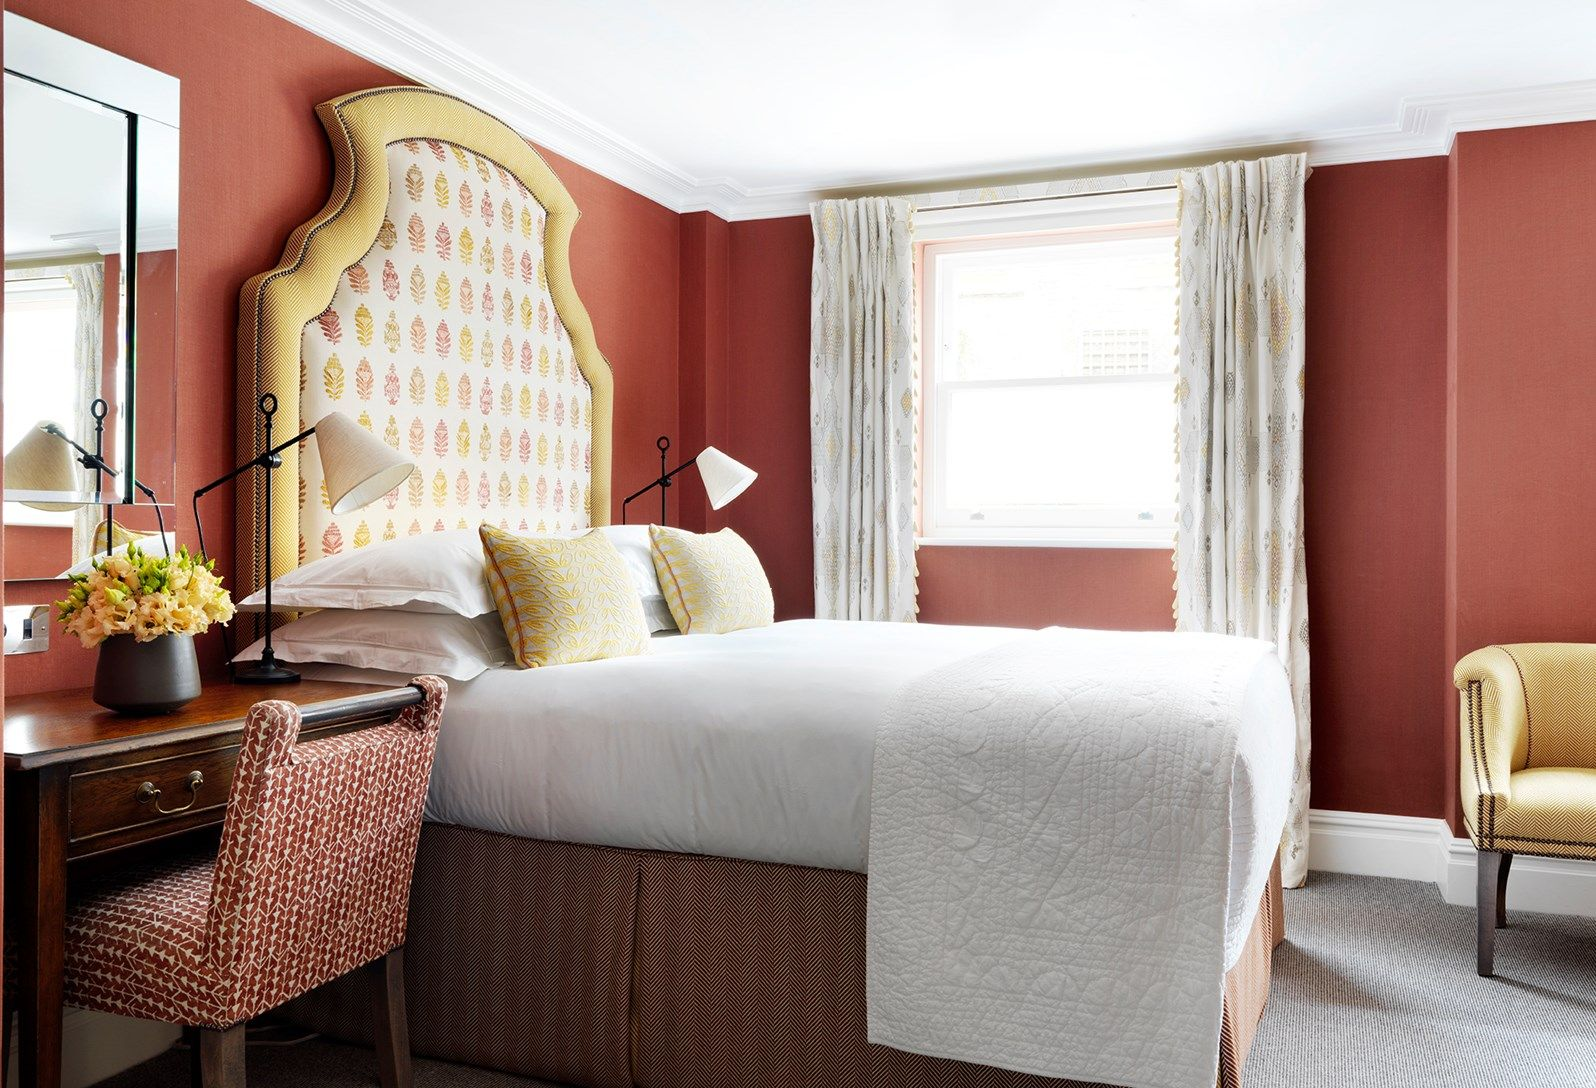 A bright and light bedroom containing an inviting bed with